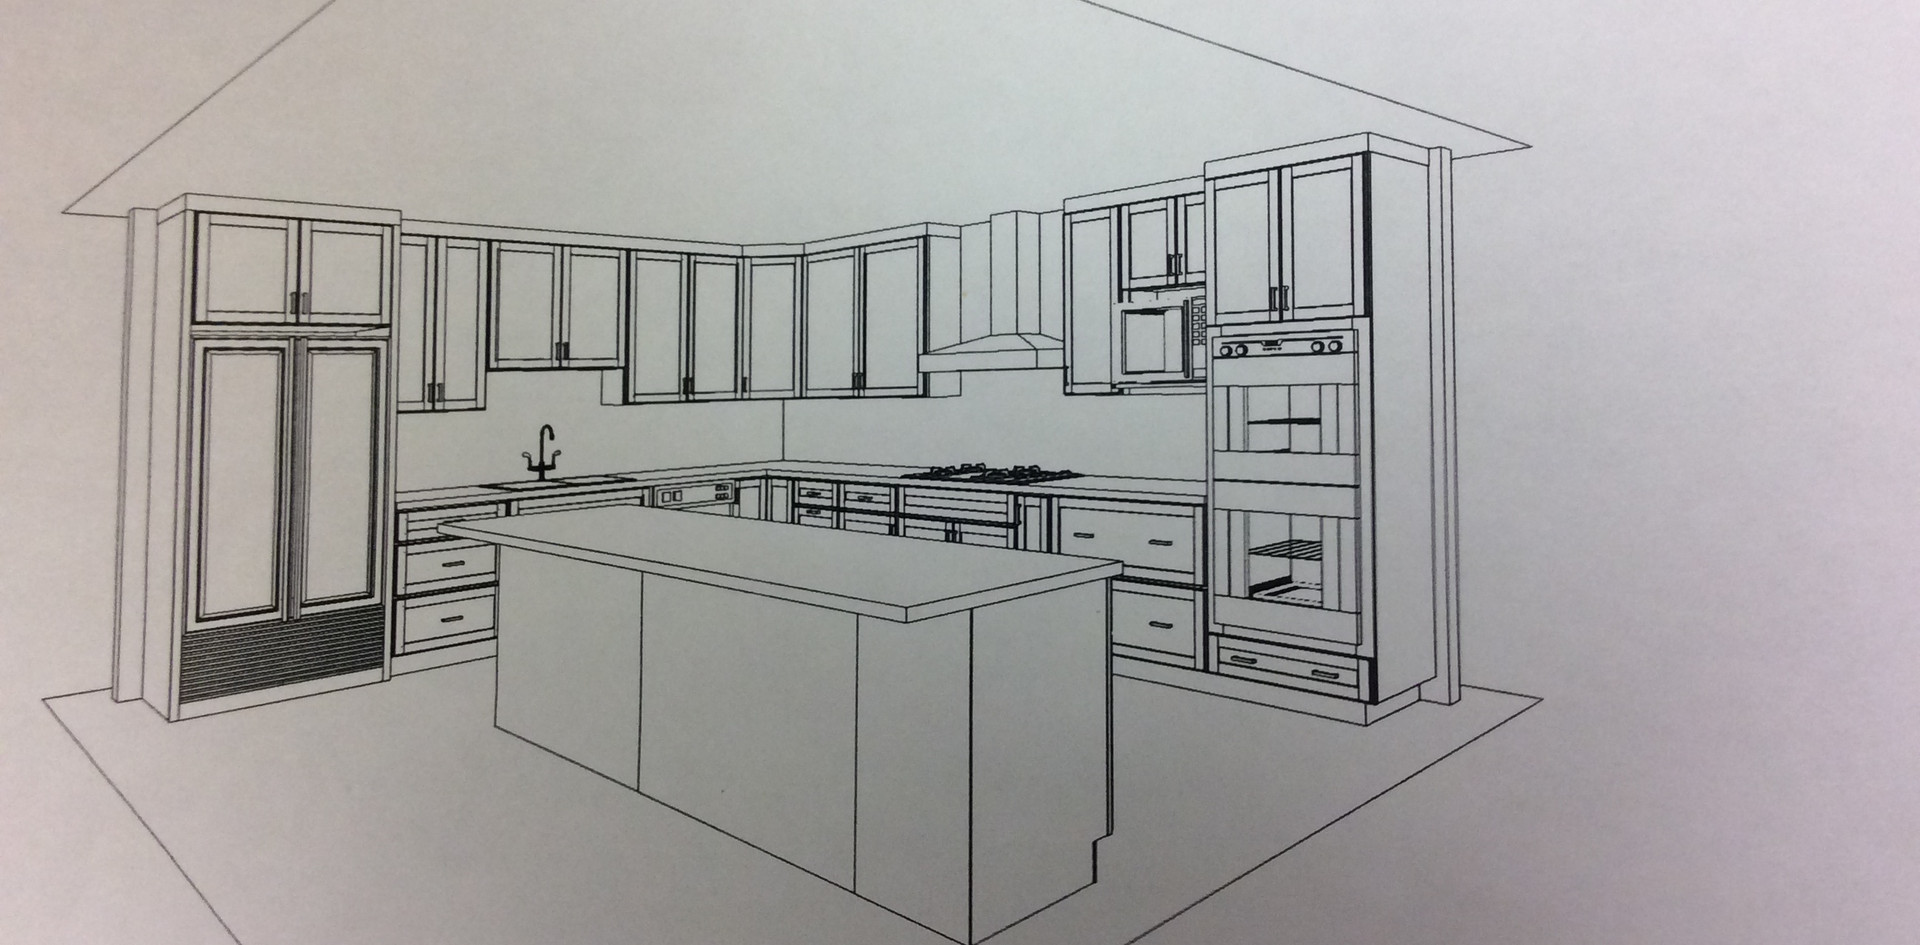 Kitchen Layout Design.JPG